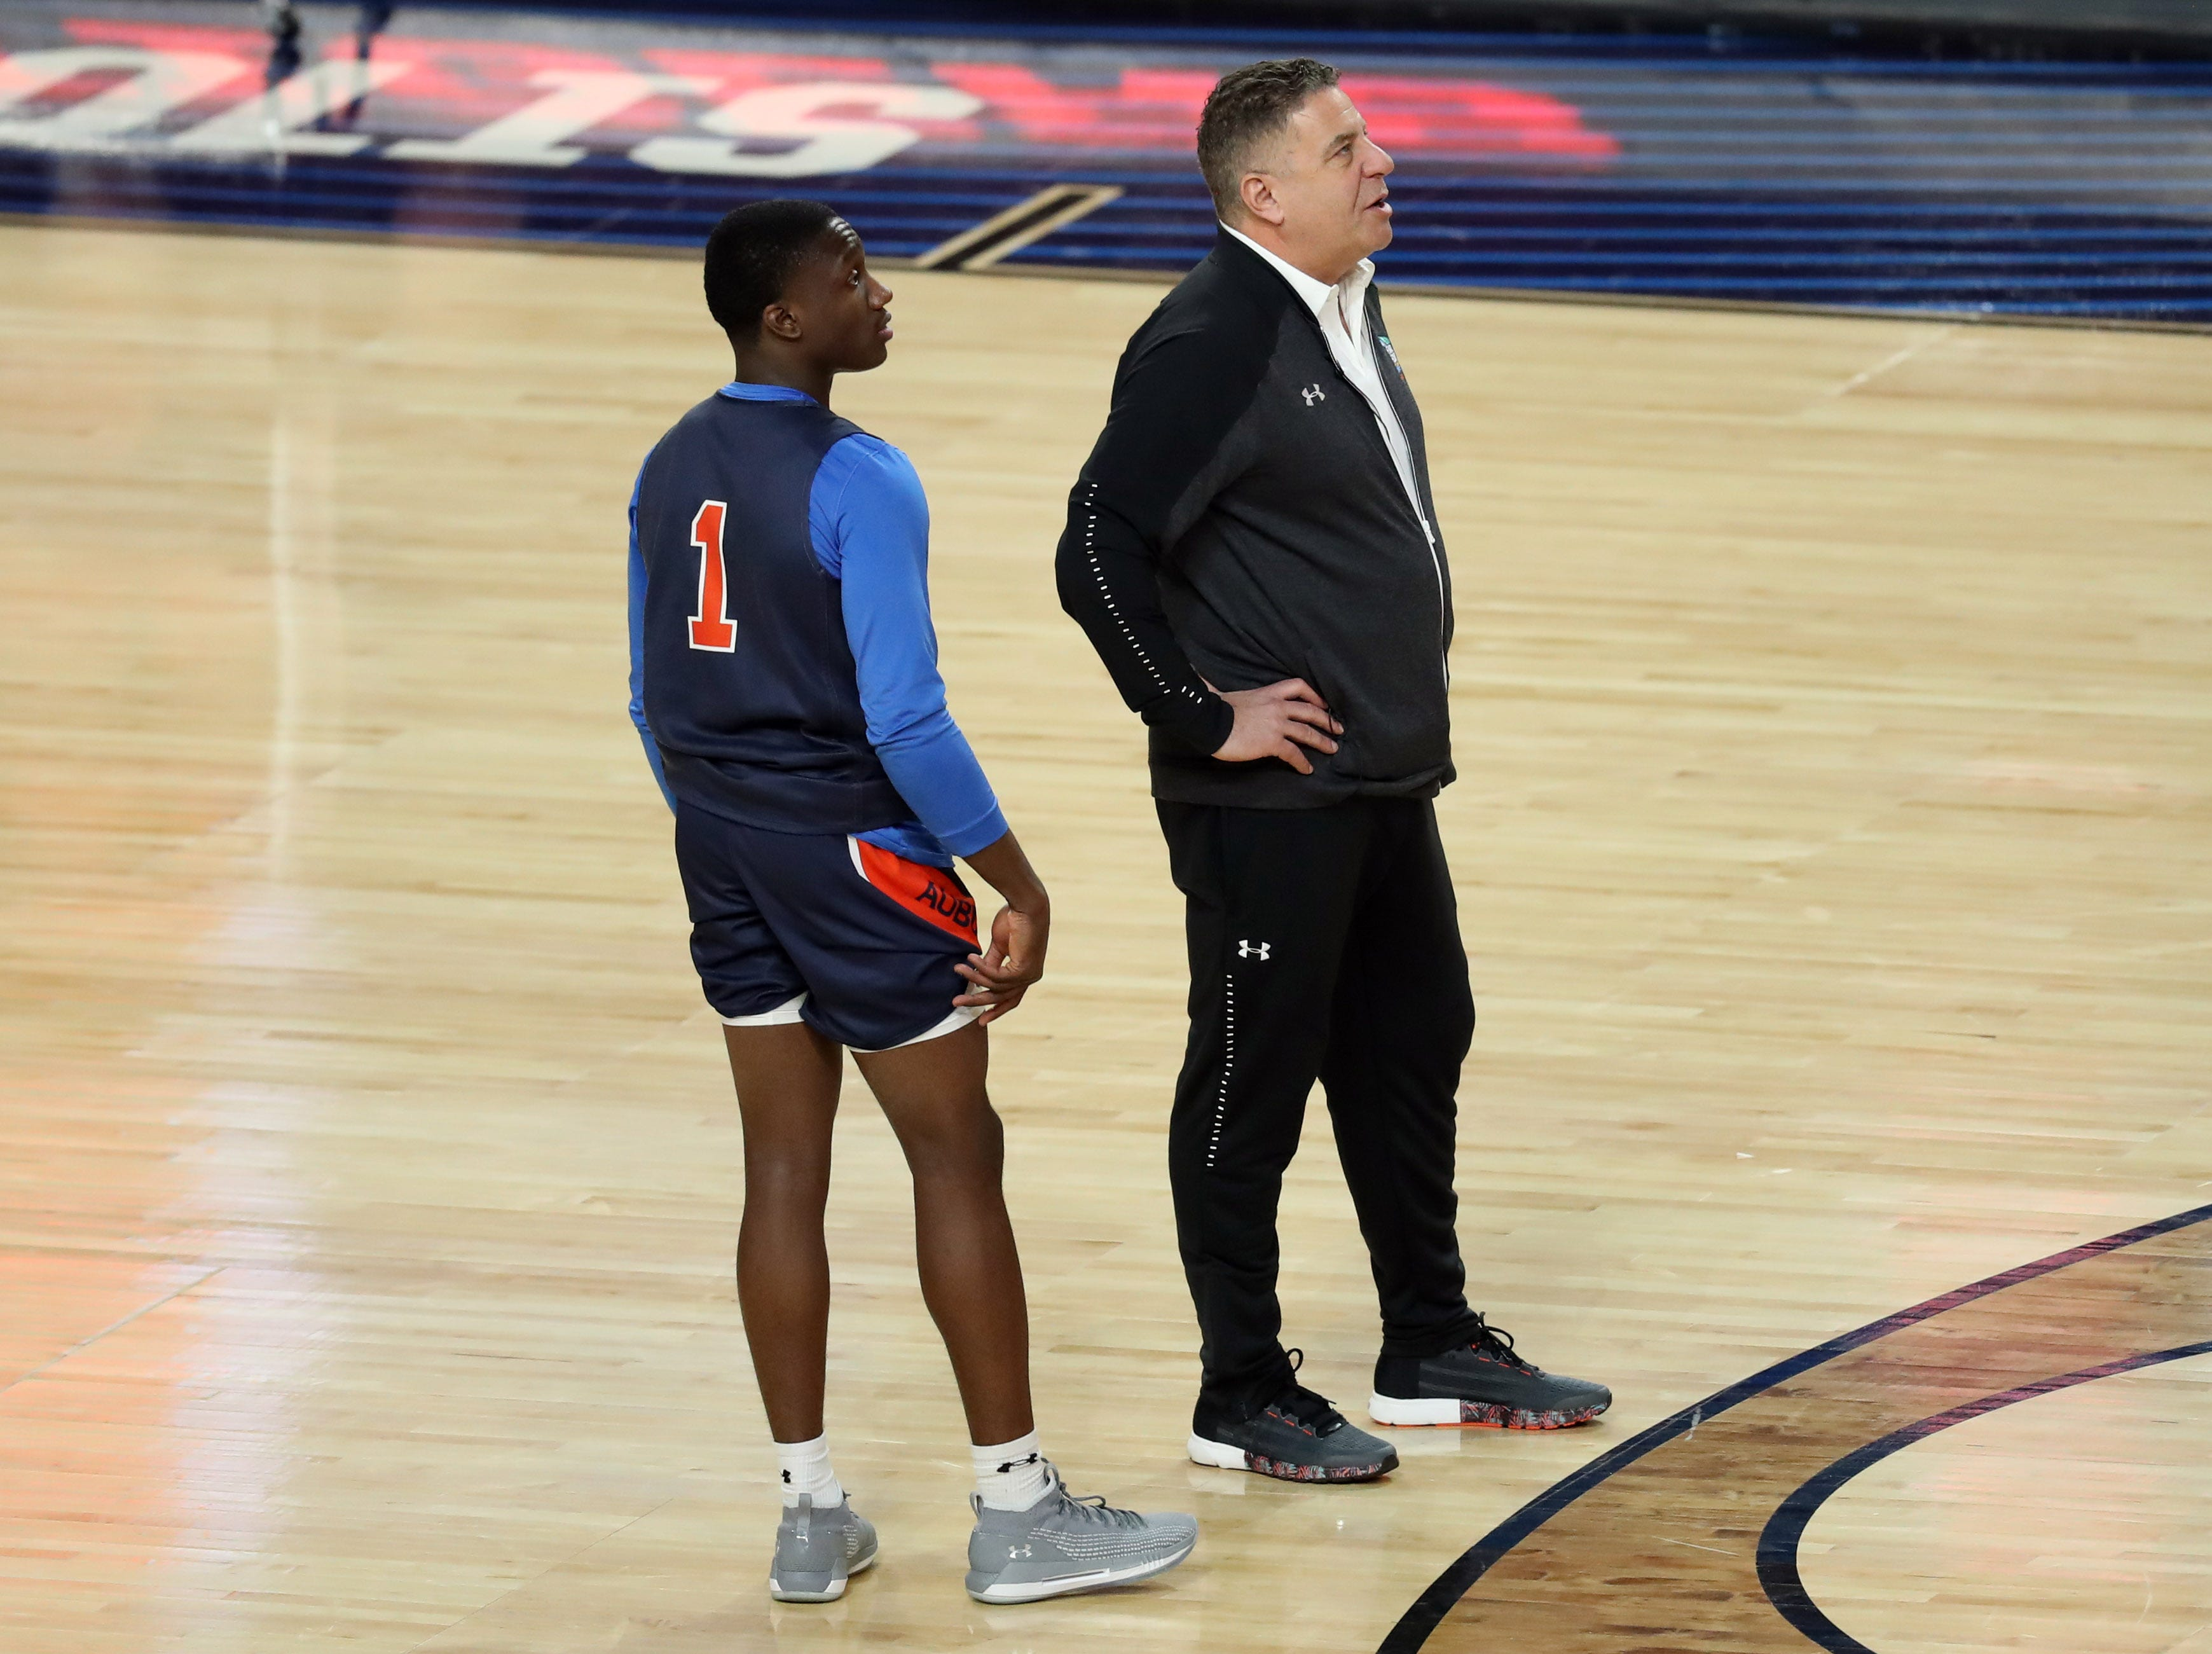 Apr 5, 2019; Minneapolis, MN, USA; Auburn Tigers guard Jared Harper (1) and head coach Bruce Pearl look on during practice for the 2019 men's Final Four at US Bank Stadium. Mandatory Credit: Brace Hemmelgarn-USA TODAY Sports